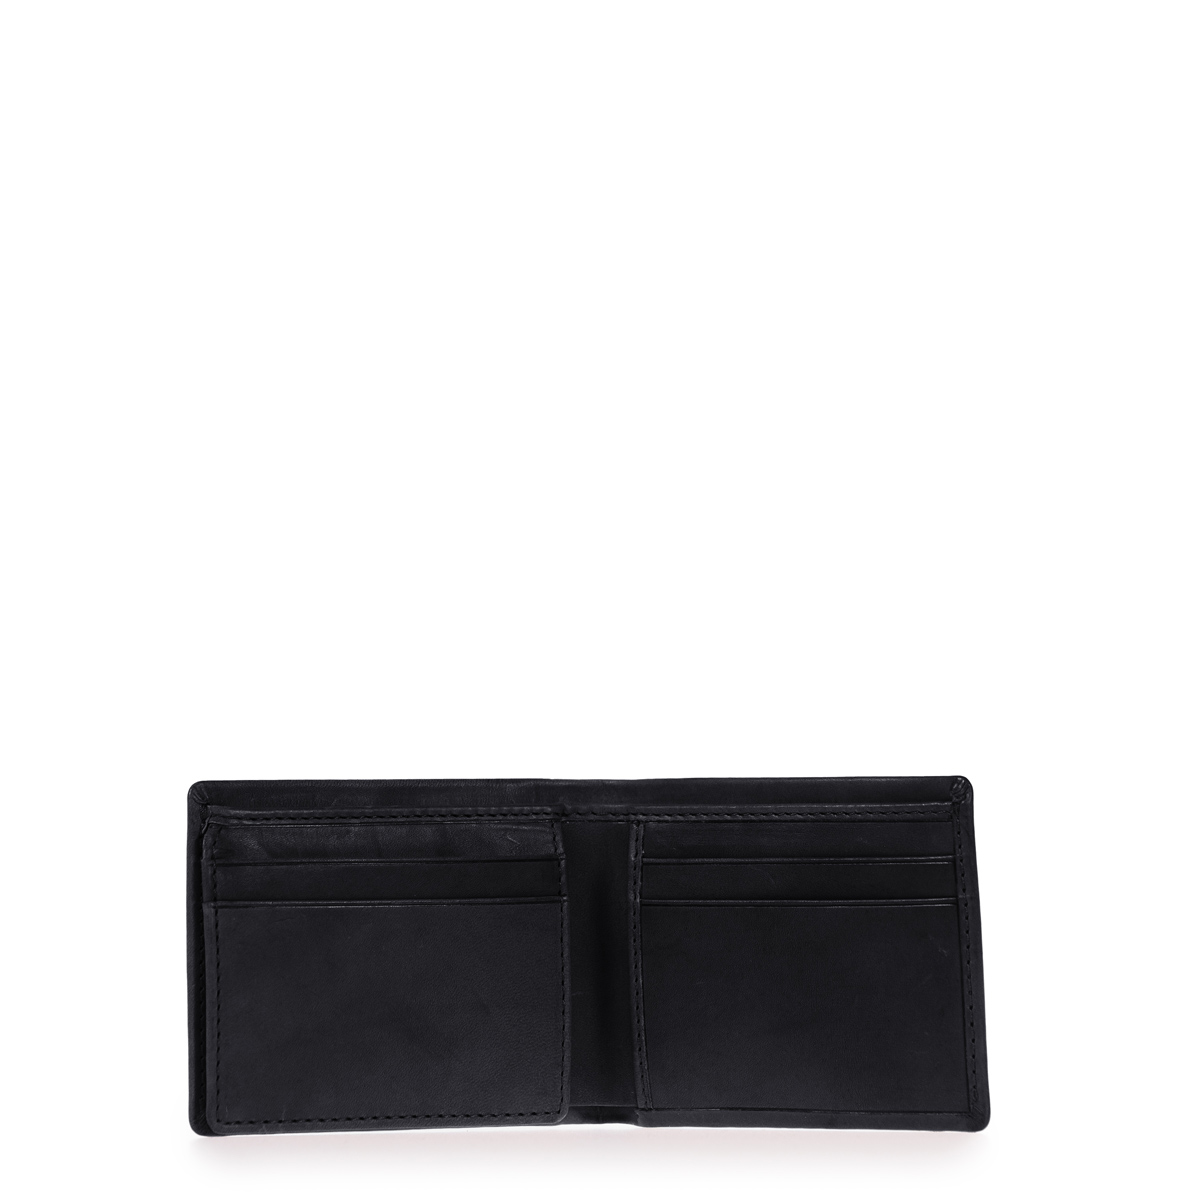 O My Bag - Joshua's Wallet, Eco Classic Black